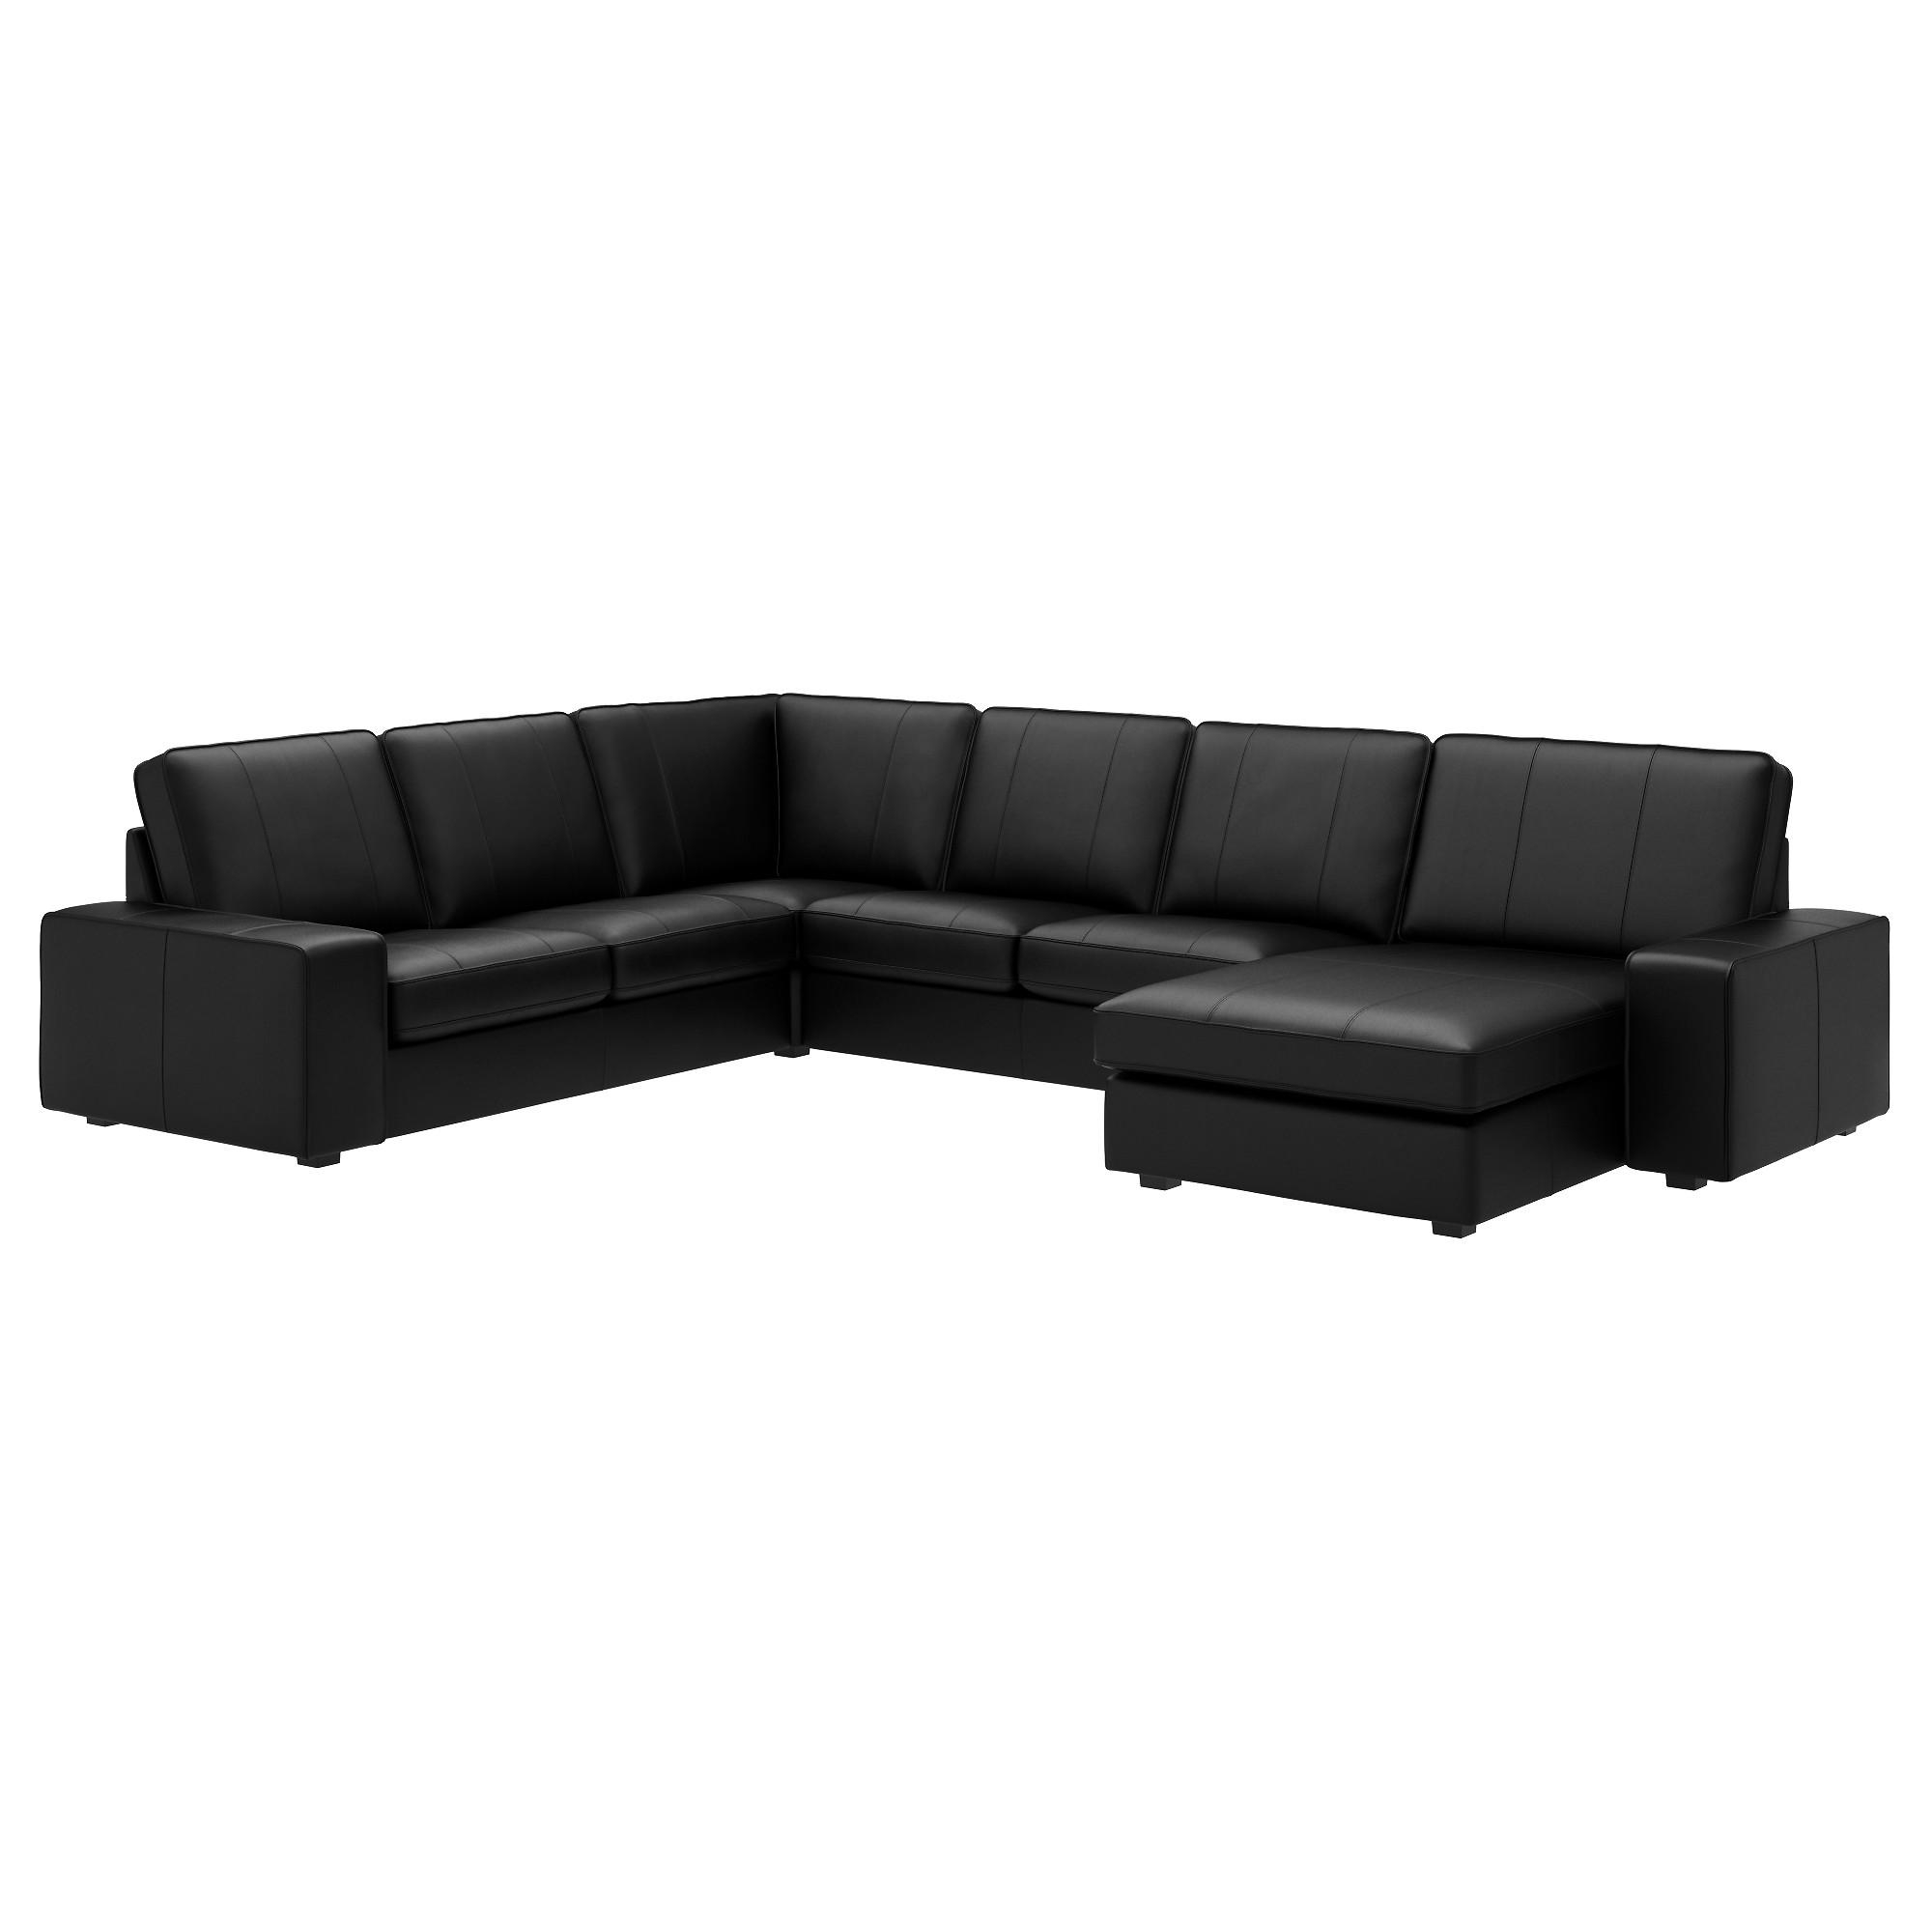 Corner Sofas | Ikea With Regard To Small Sofas Ikea (View 17 of 20)